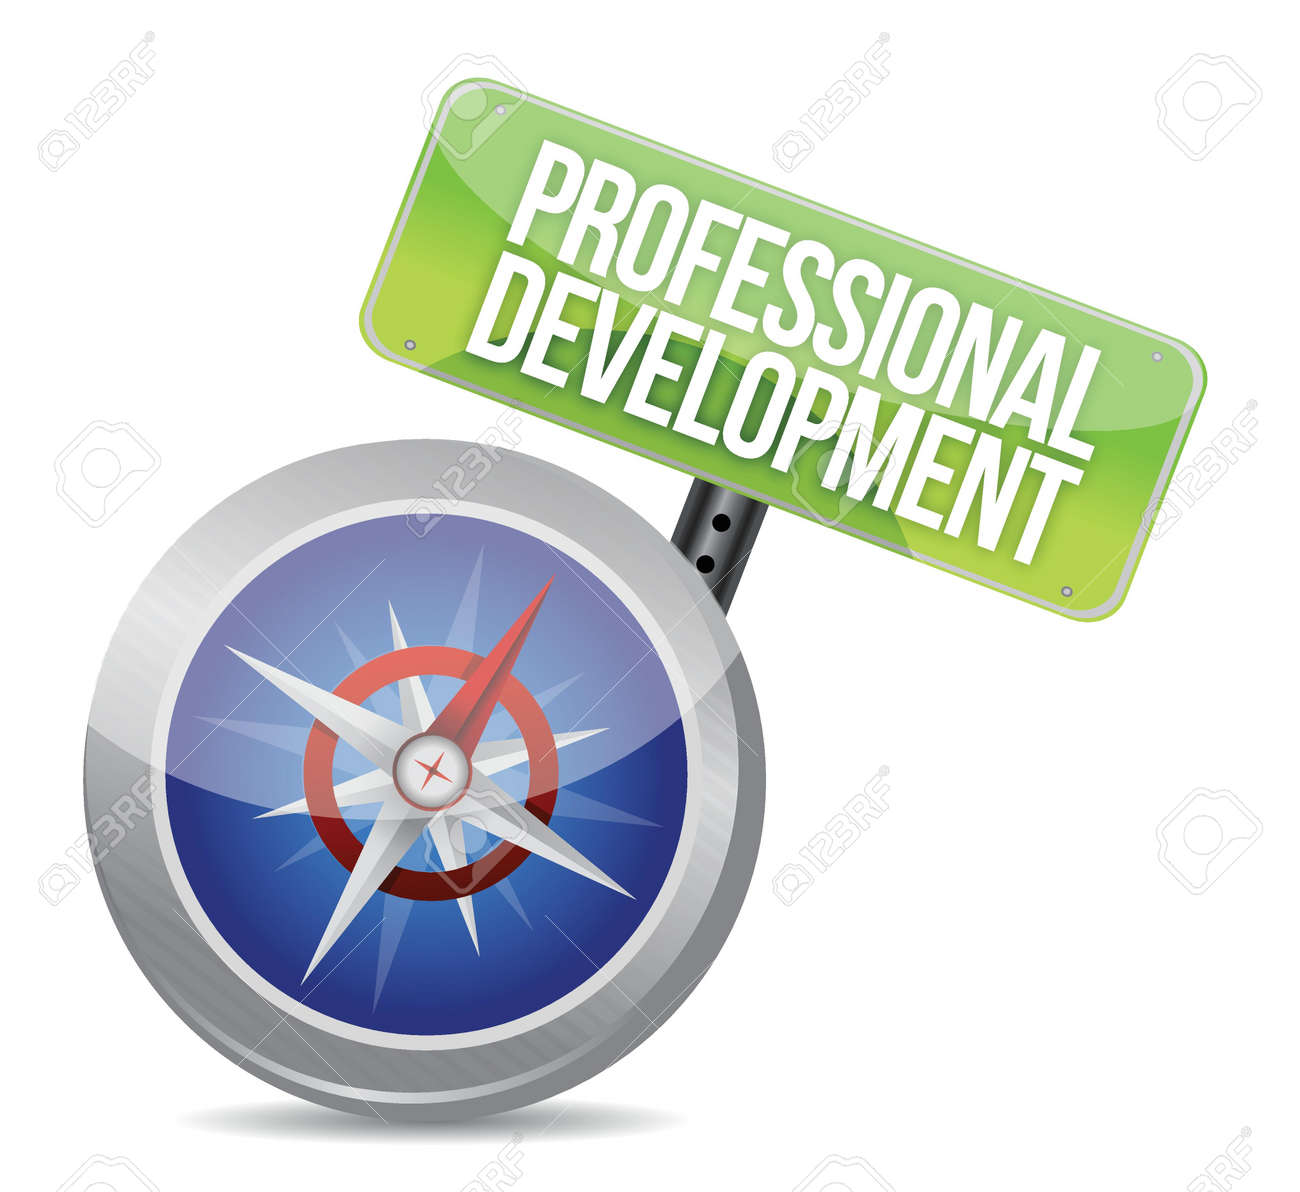 professional development Glossy Compass illustration design over a white background Stock Vector - 17872275